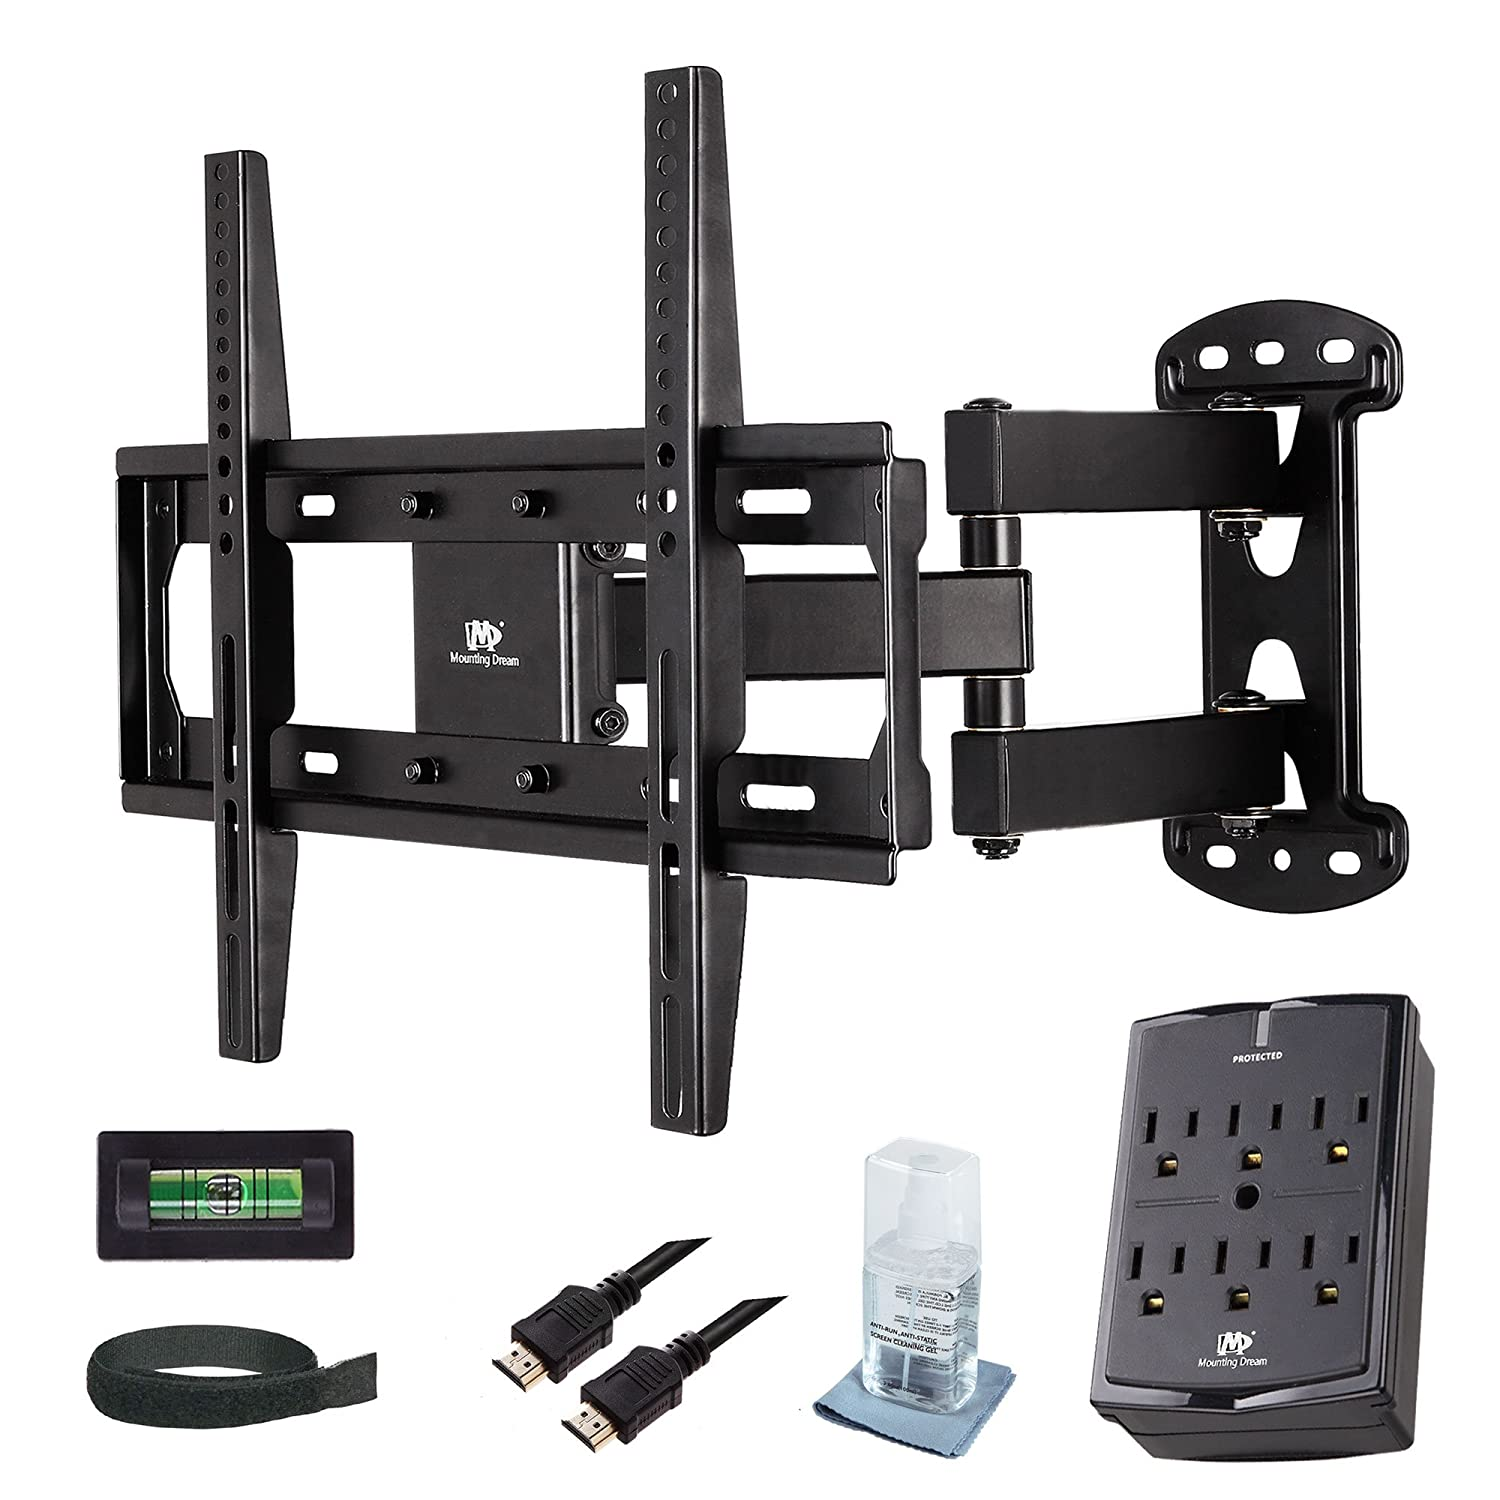 Mounting Dream MD2377-KT TV Wall Mount Bracket Kit with Full Motion Articulating Arm 15-Inch Extension for most of 26-55 Inches LED, LCD and Plasma TVs up to VESA 400x400mm and 66lbs (Black)